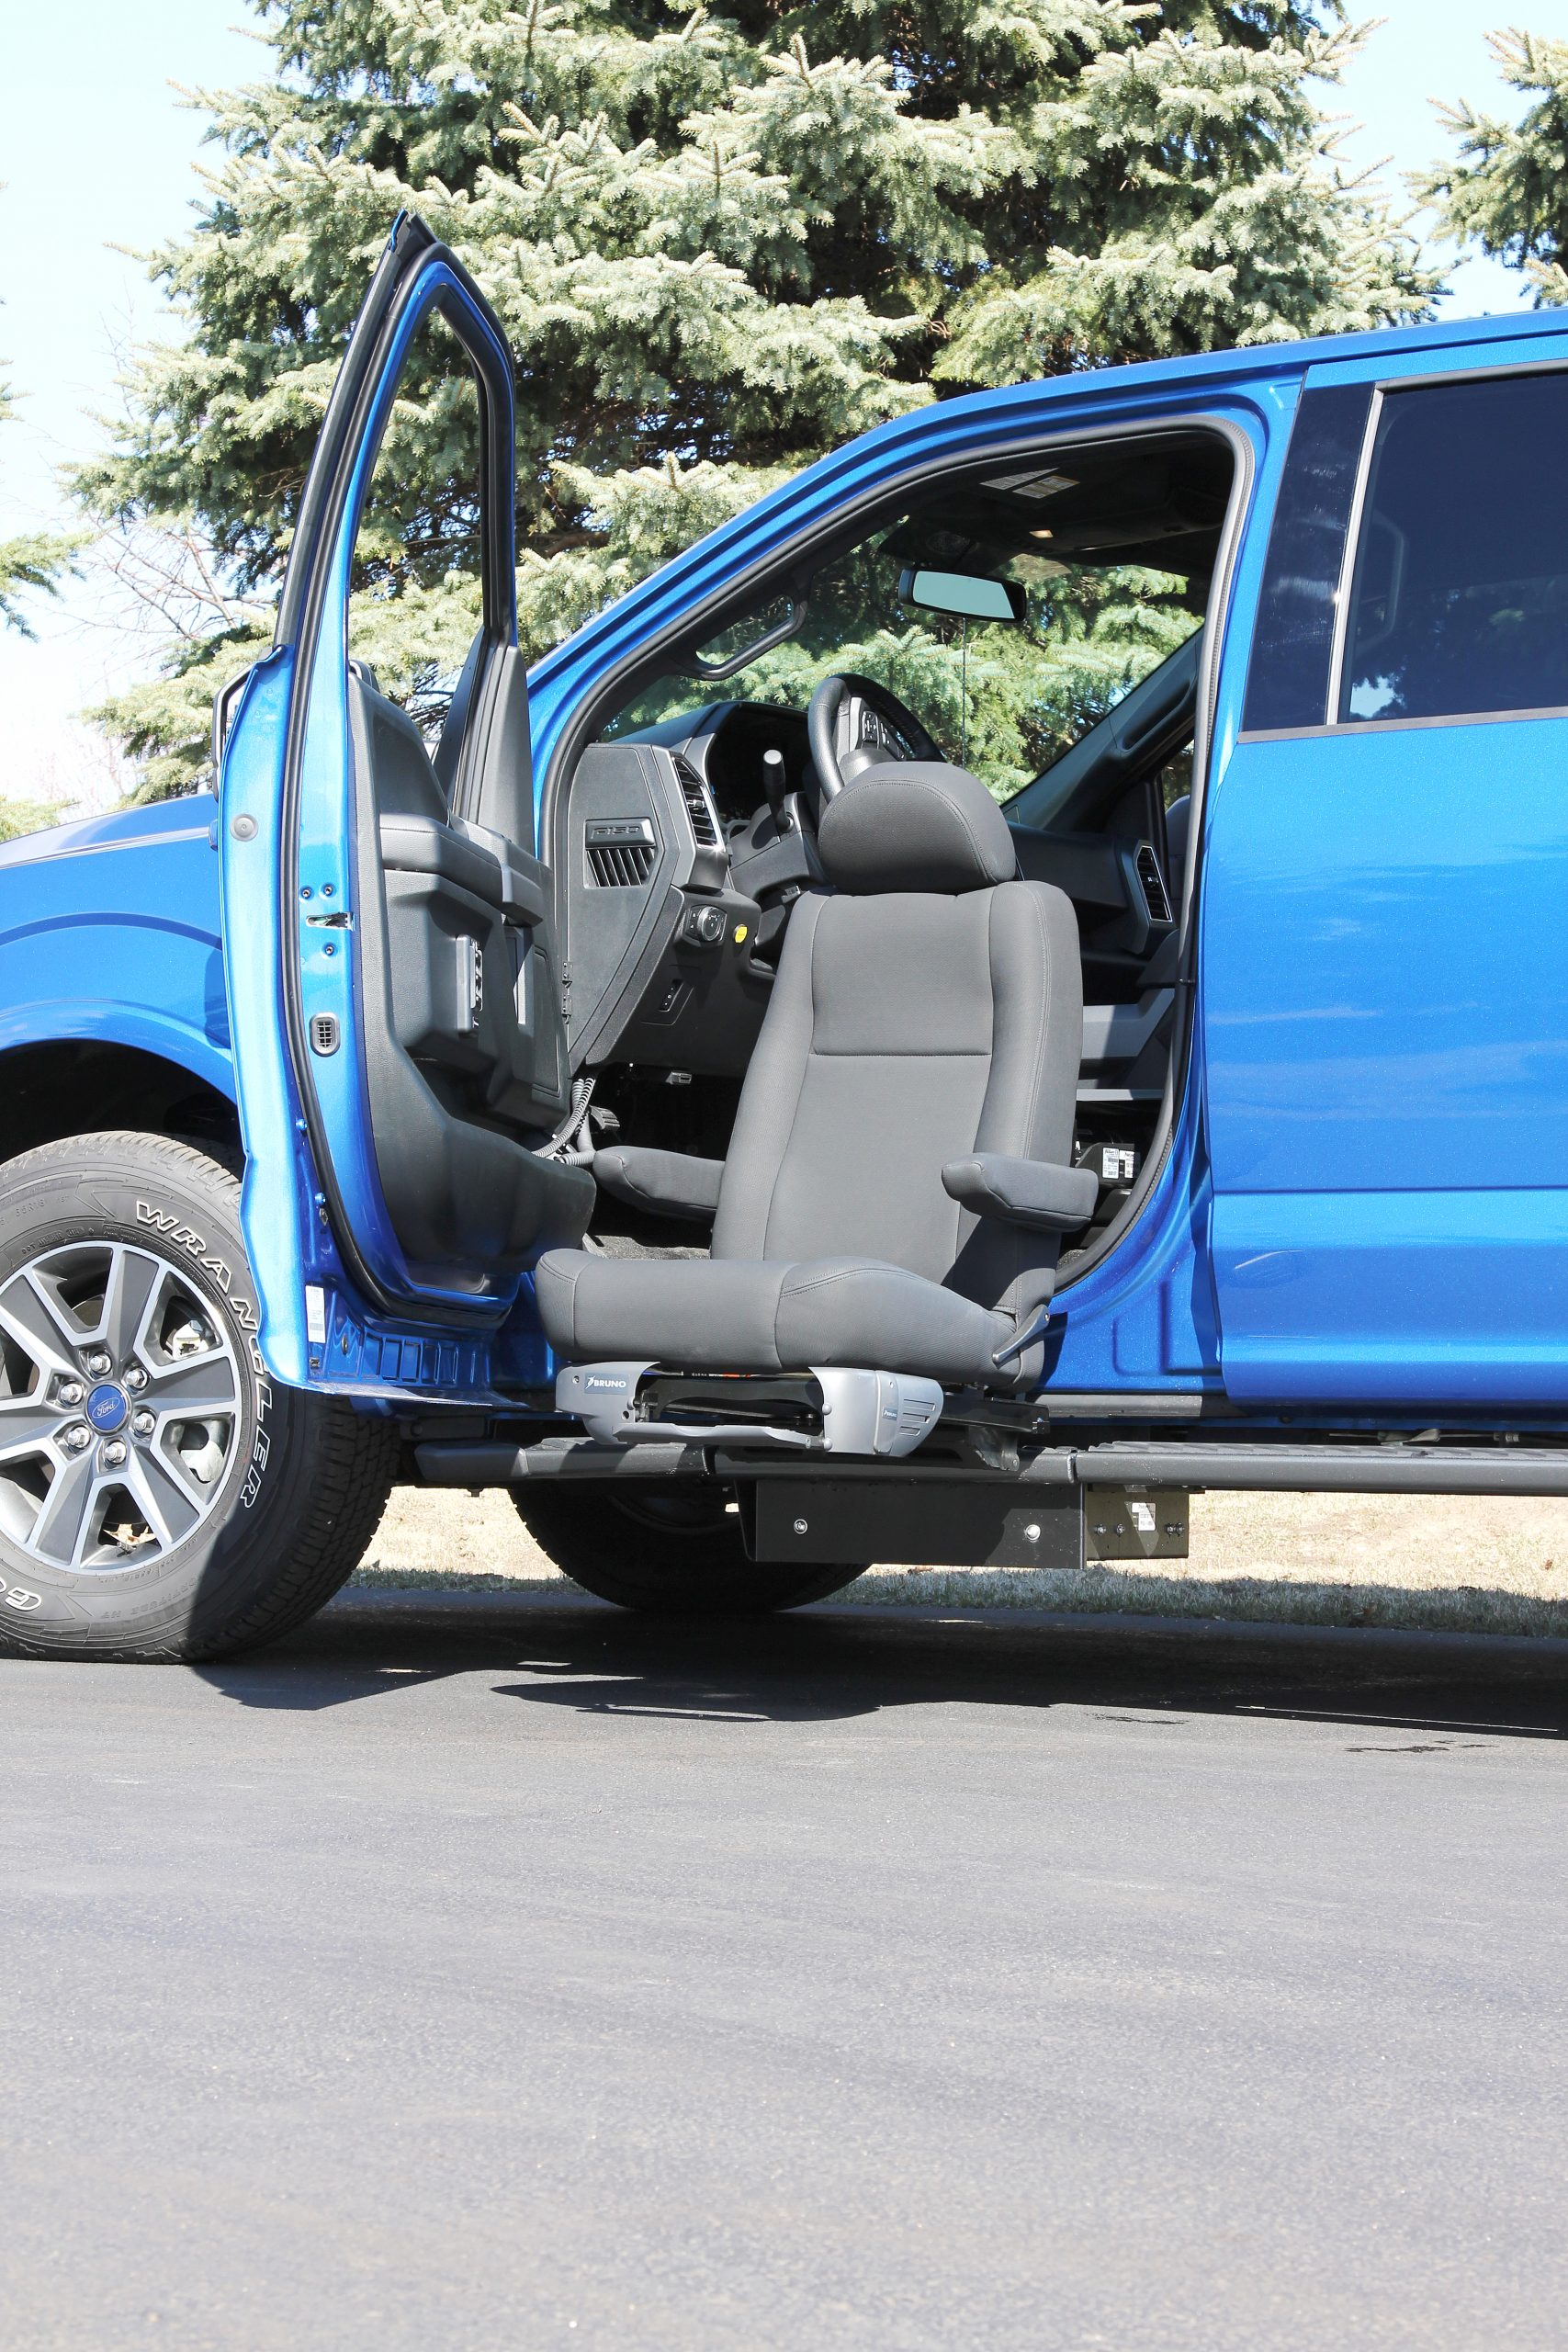 The Bruno Valet Seat in a blue truck